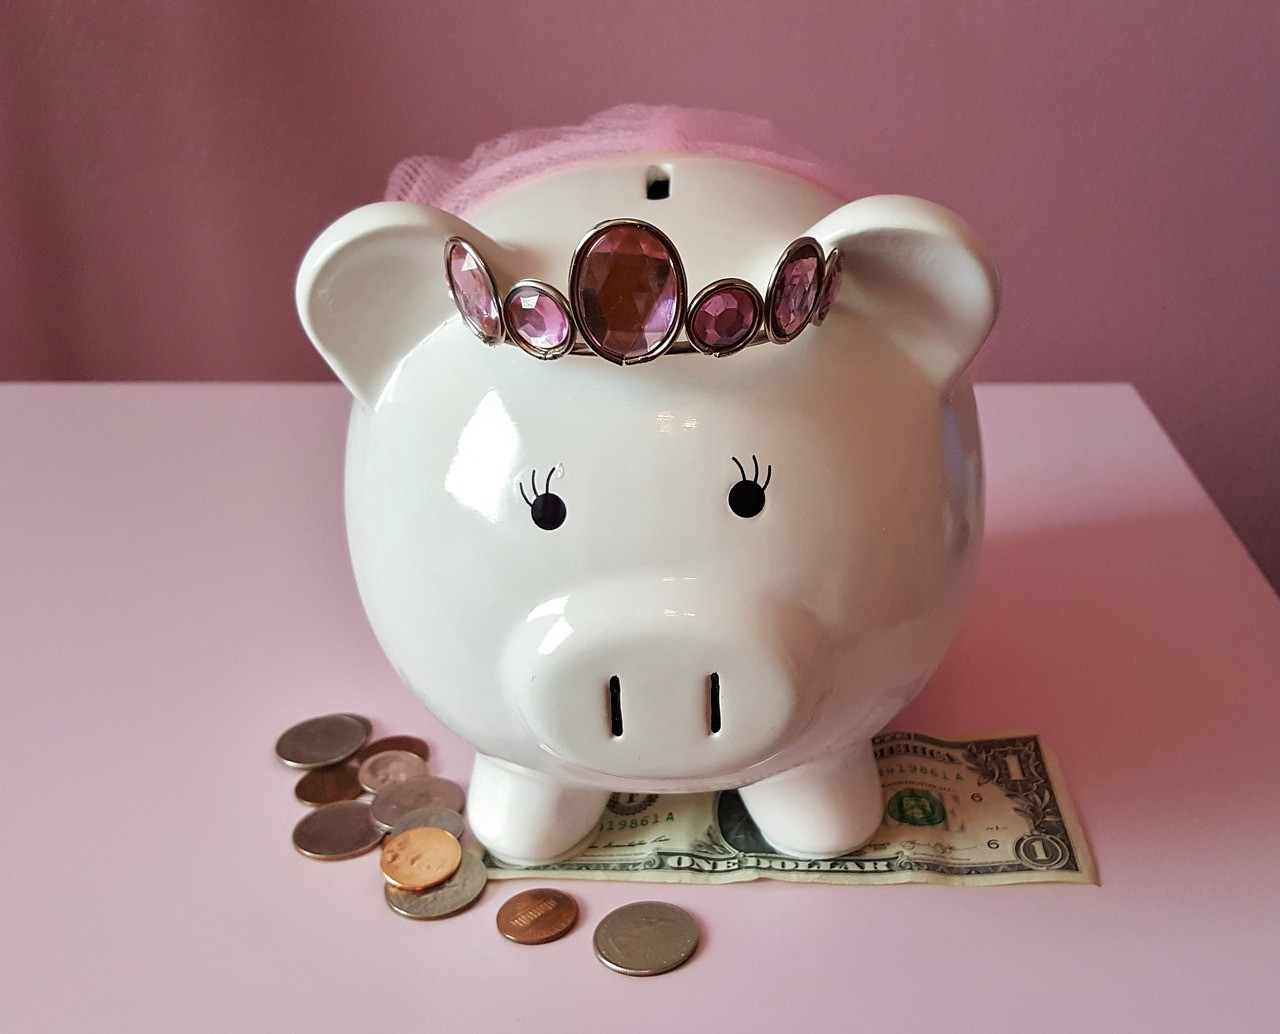 a piggy bank wearing a tiara and a tutu standing above small denominations of US currency